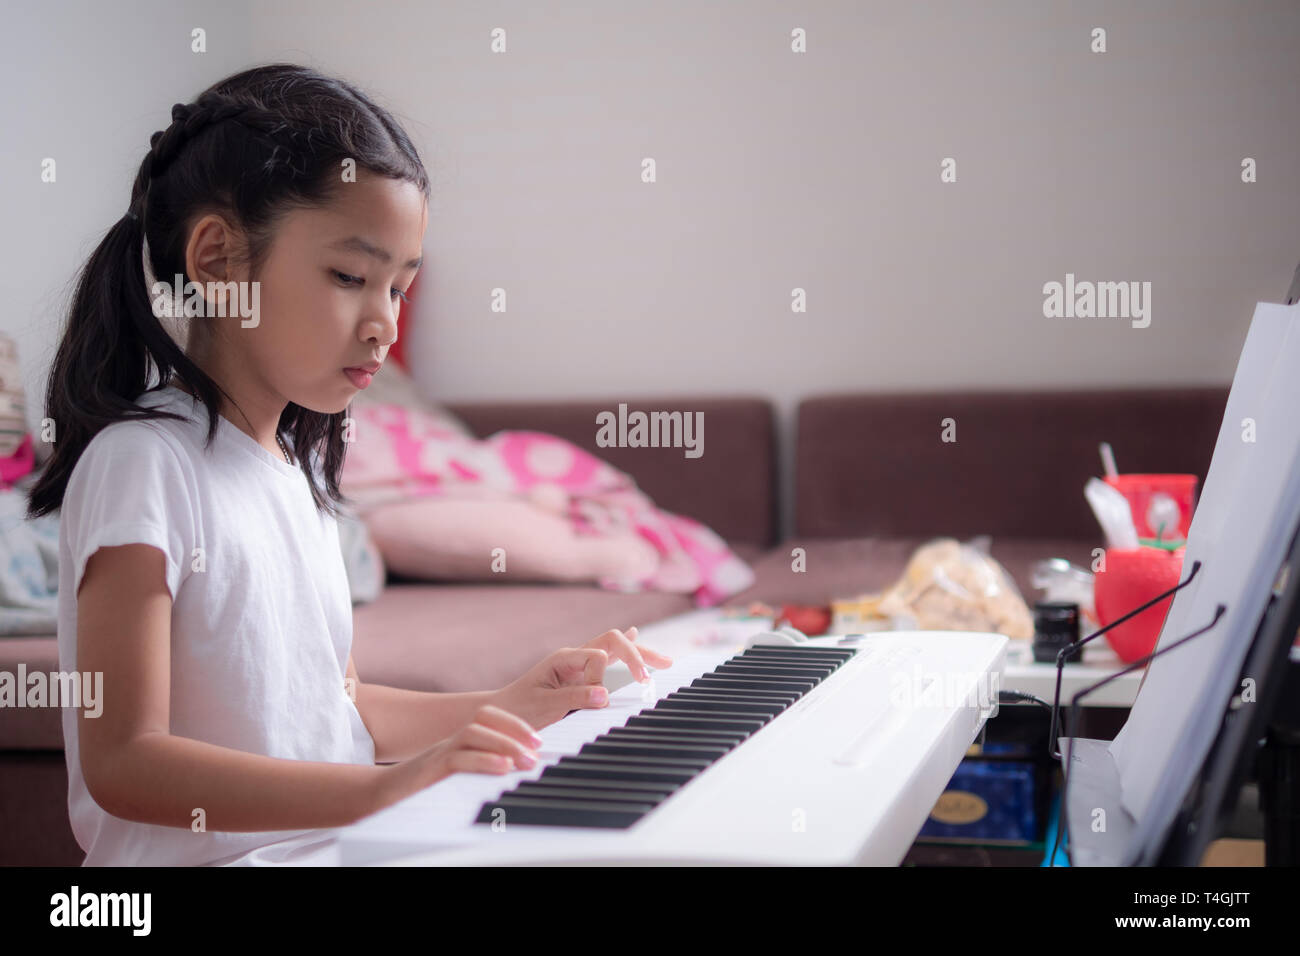 Asian little girl learning to play piano keyboard synthesizer with happiness, Thai girl studying the music at hom - Stock Image